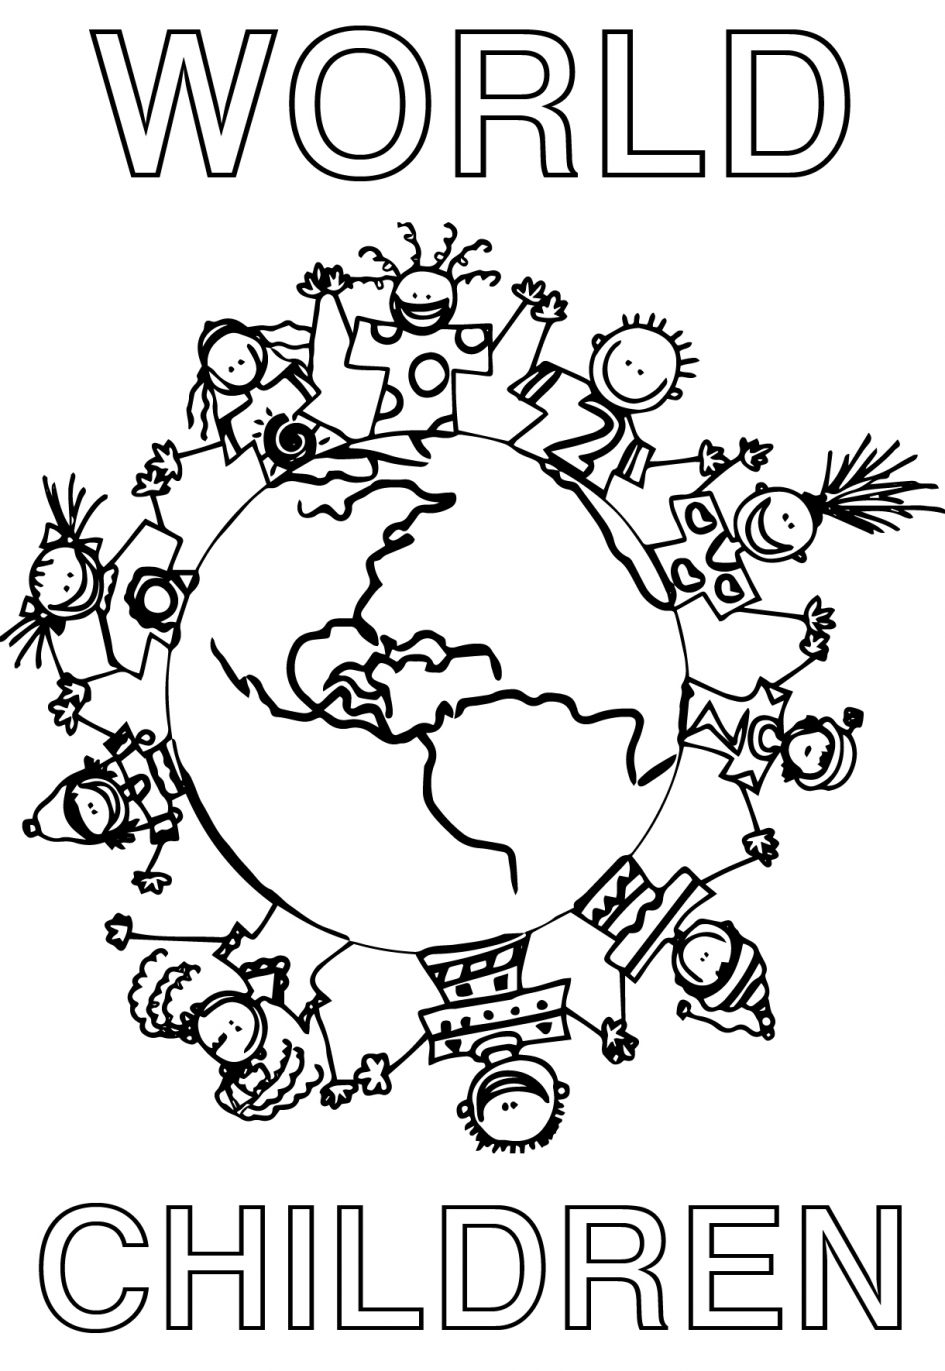 945x1371 Children Holding Hands Around World Coloring Page Cute Within